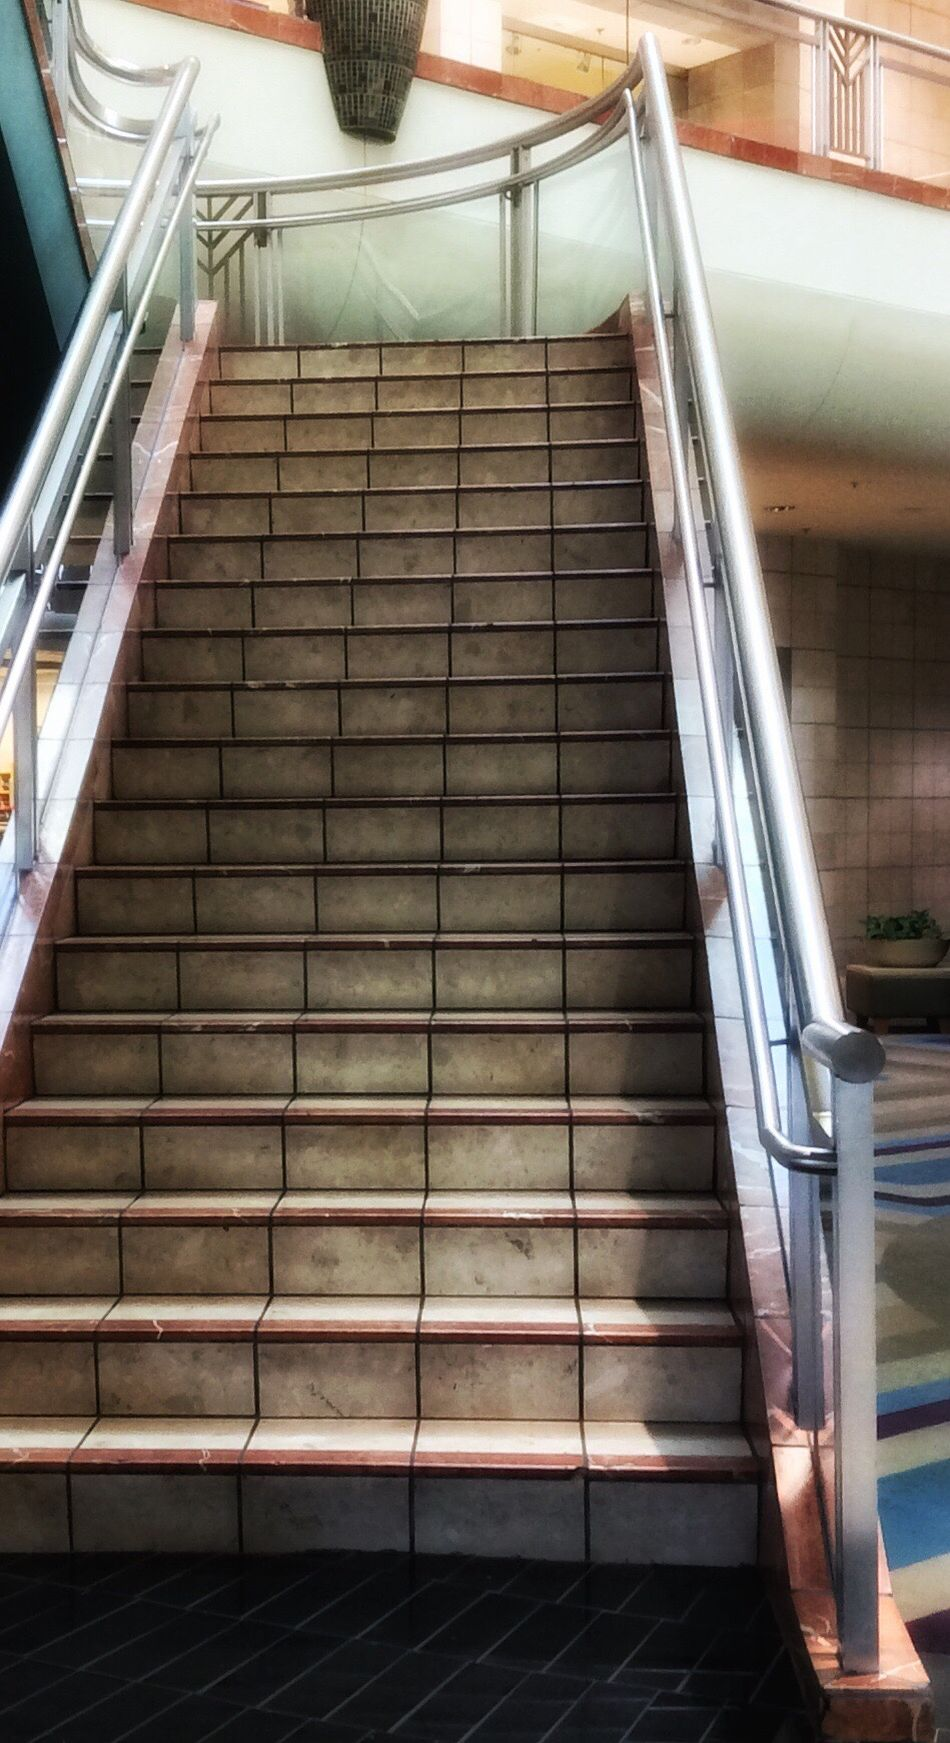 Steps And Staircases Steps Low Angle View Staircase No People Architecture Outdoors Day Nostalgic  Eye For Photography Atmosphere Metrocenter Shopping Mall Phoenix Arizona Darkness And Light Architectural Design Going Up Going Down Eye Em The Way Forward Built Structure Architectural Feature Daytime Mall